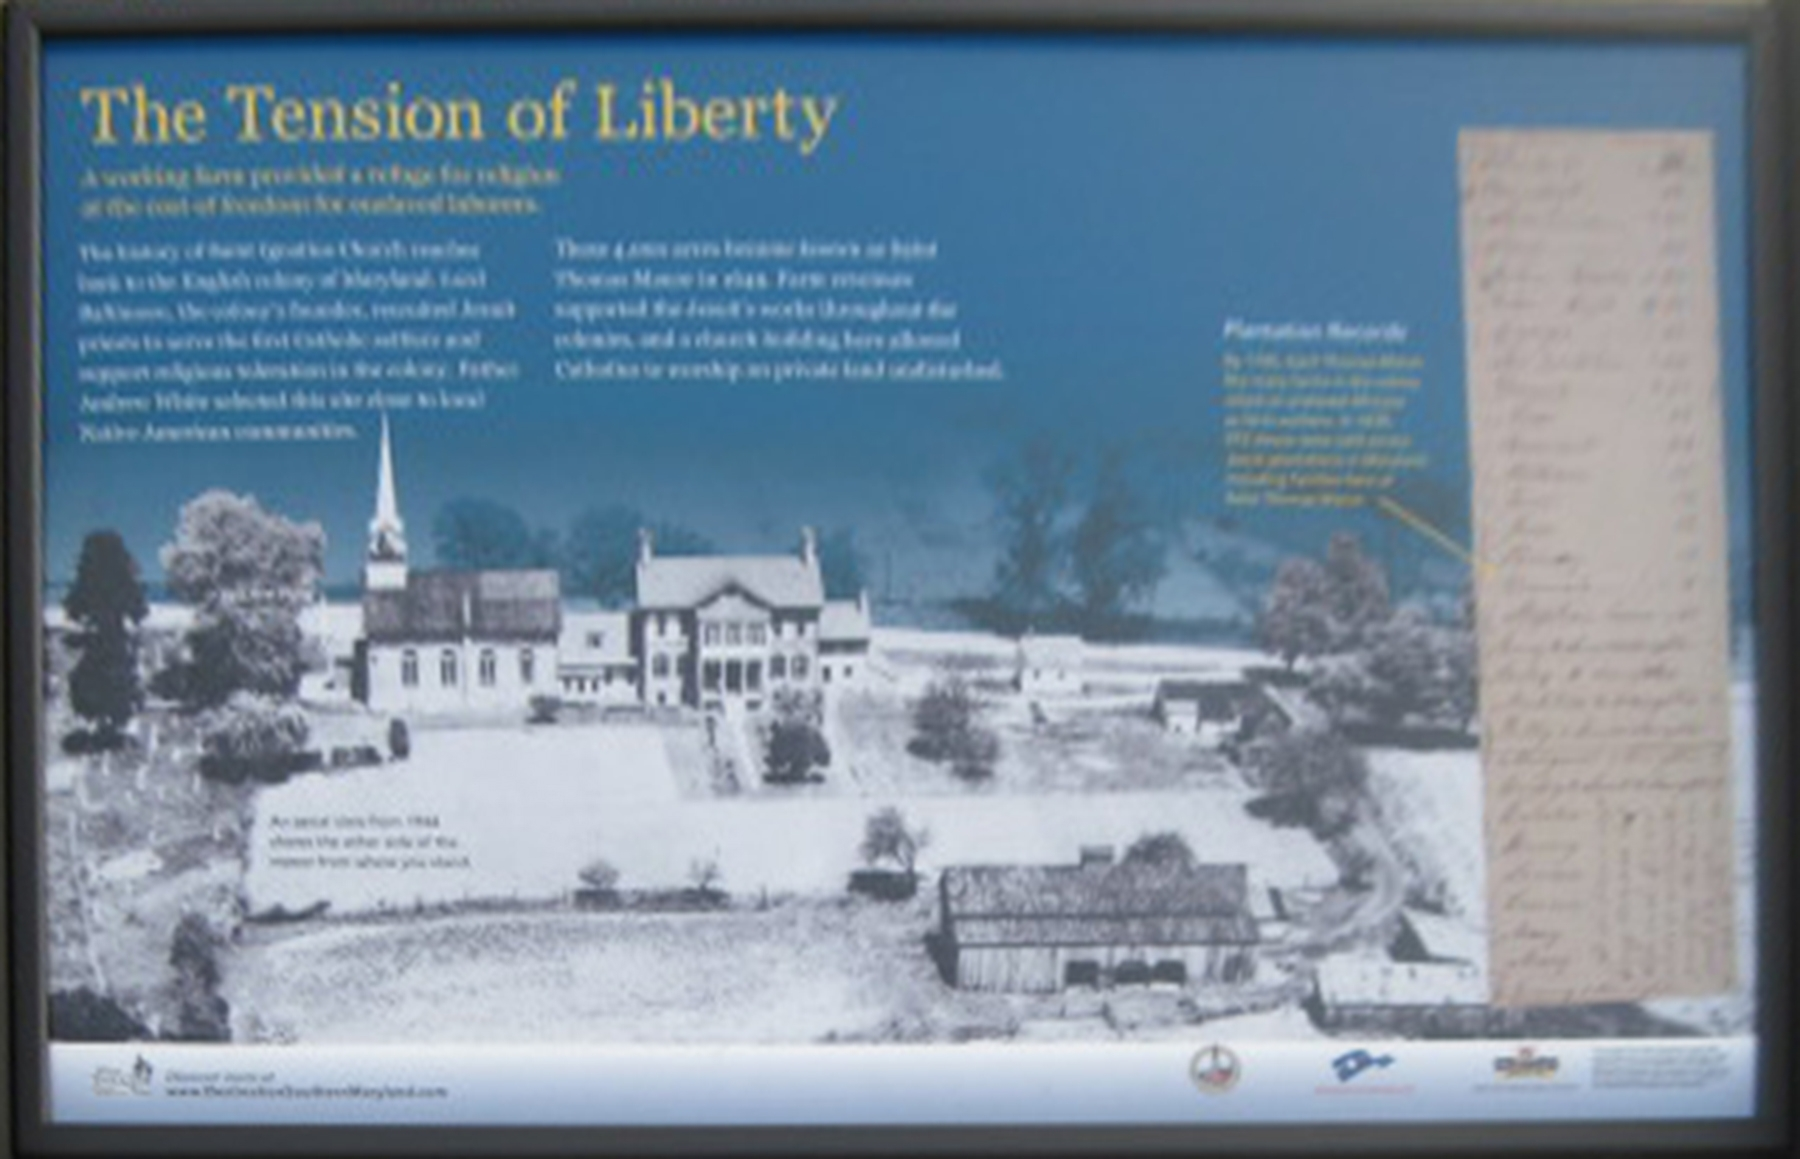 The Tension of Liberty Marker